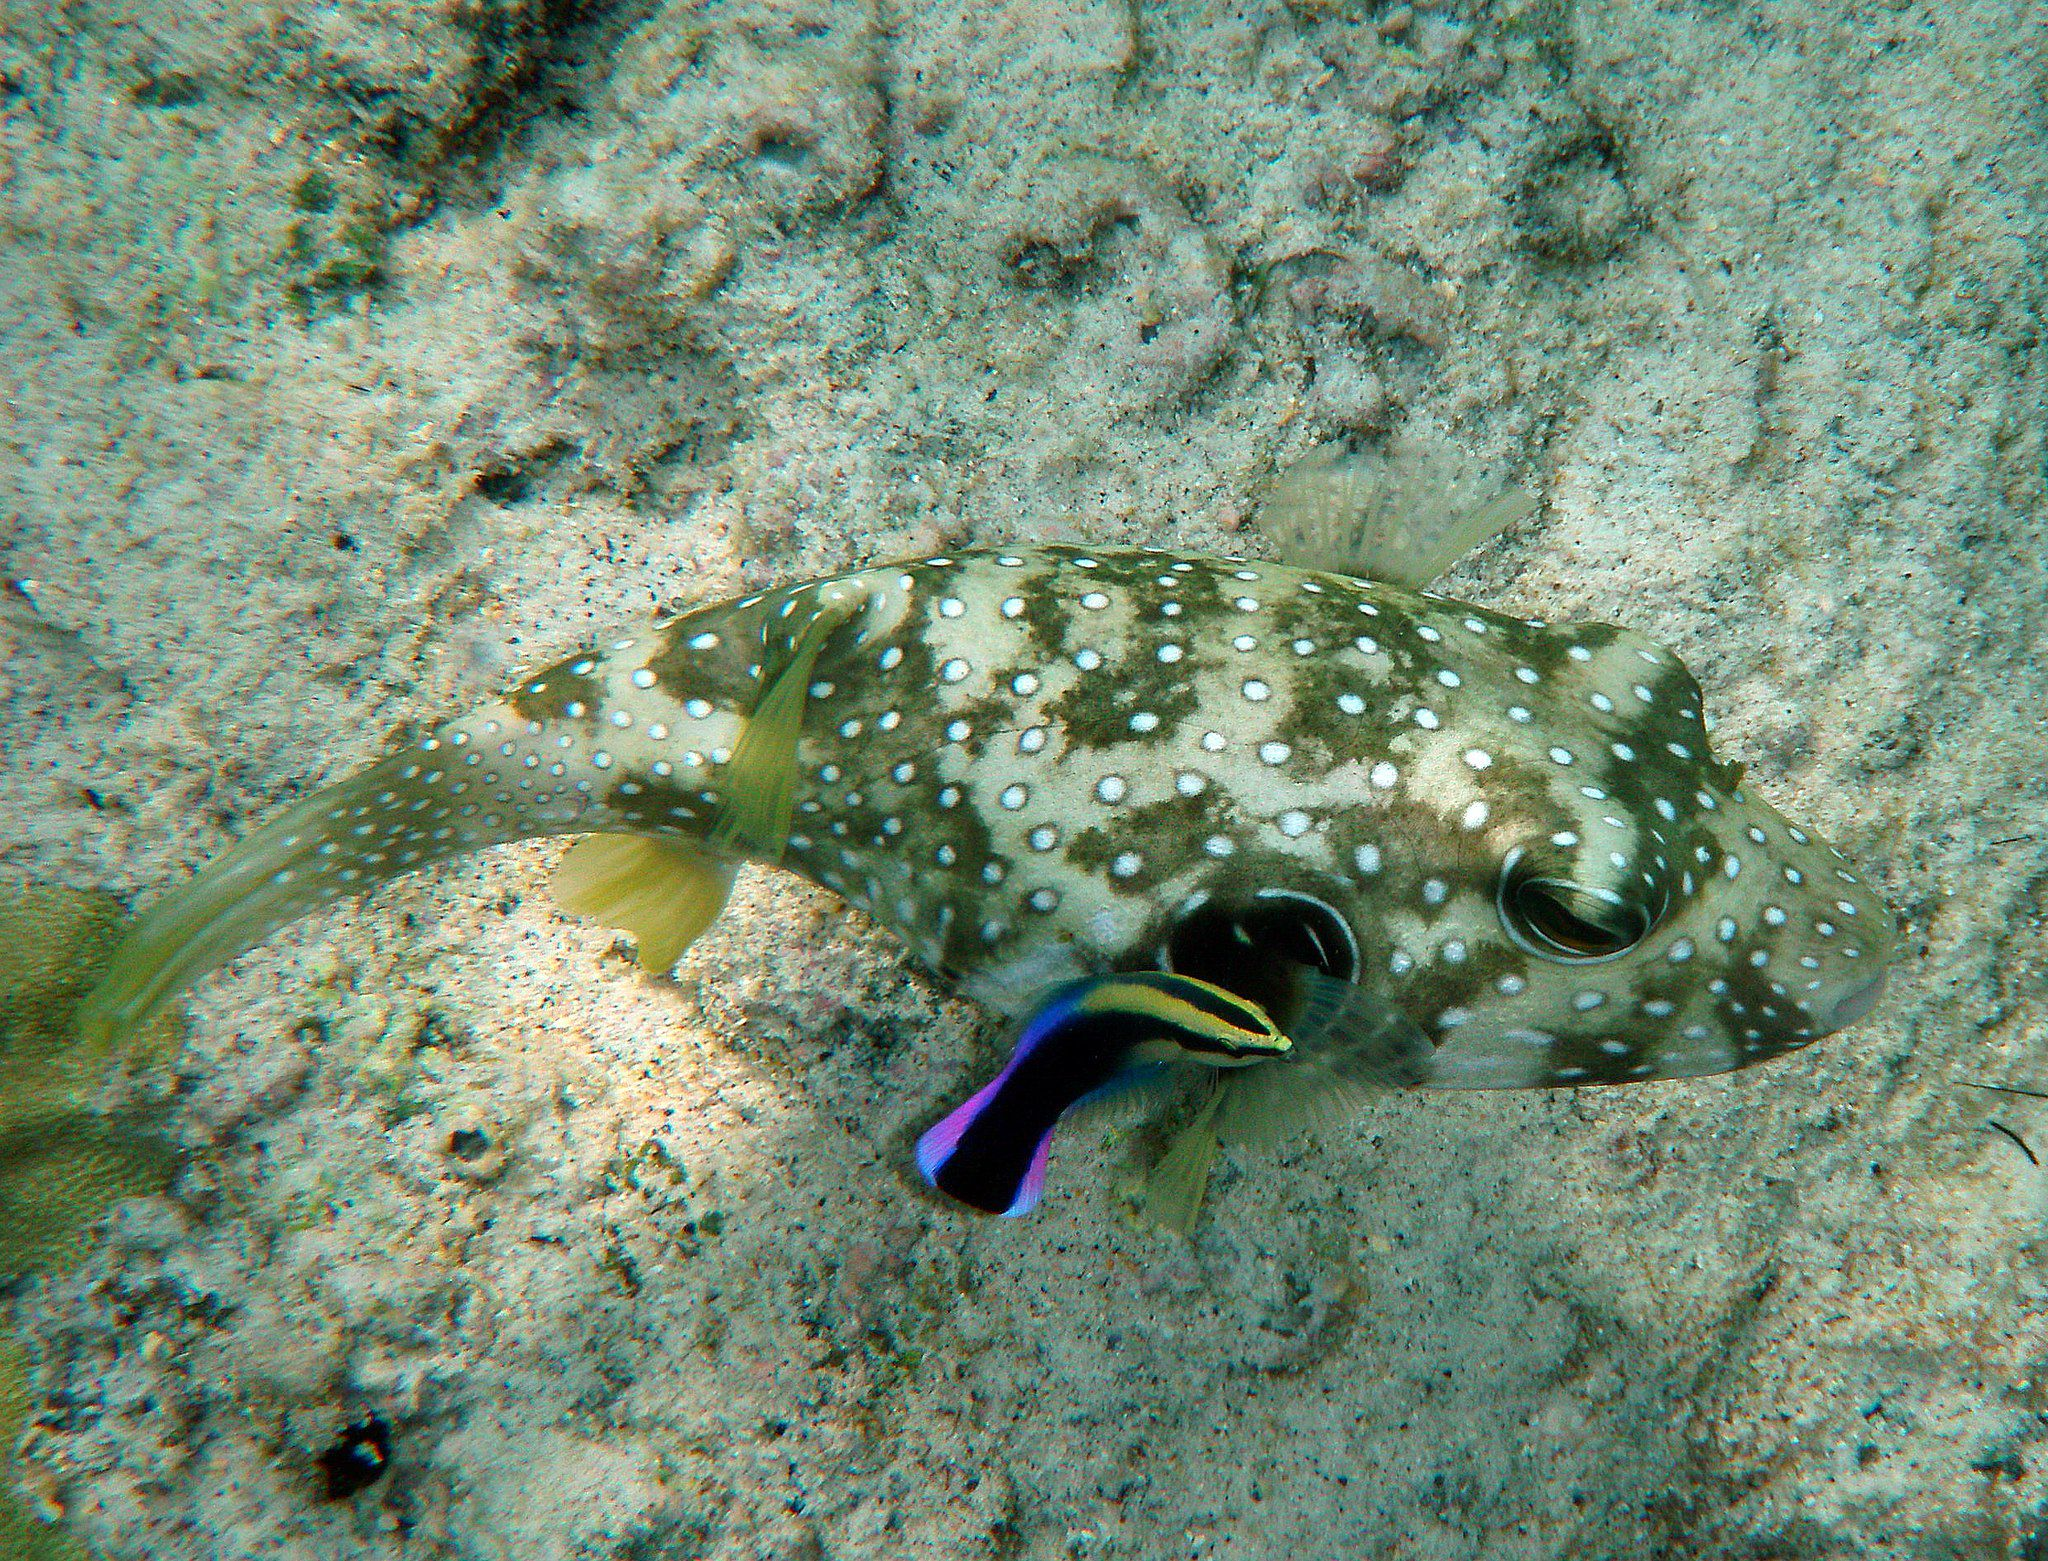 White-spotted puffer (Arothron hispidus) being cleaned by Hawaiian cleaner wrasse (Labroides phthirophagus).